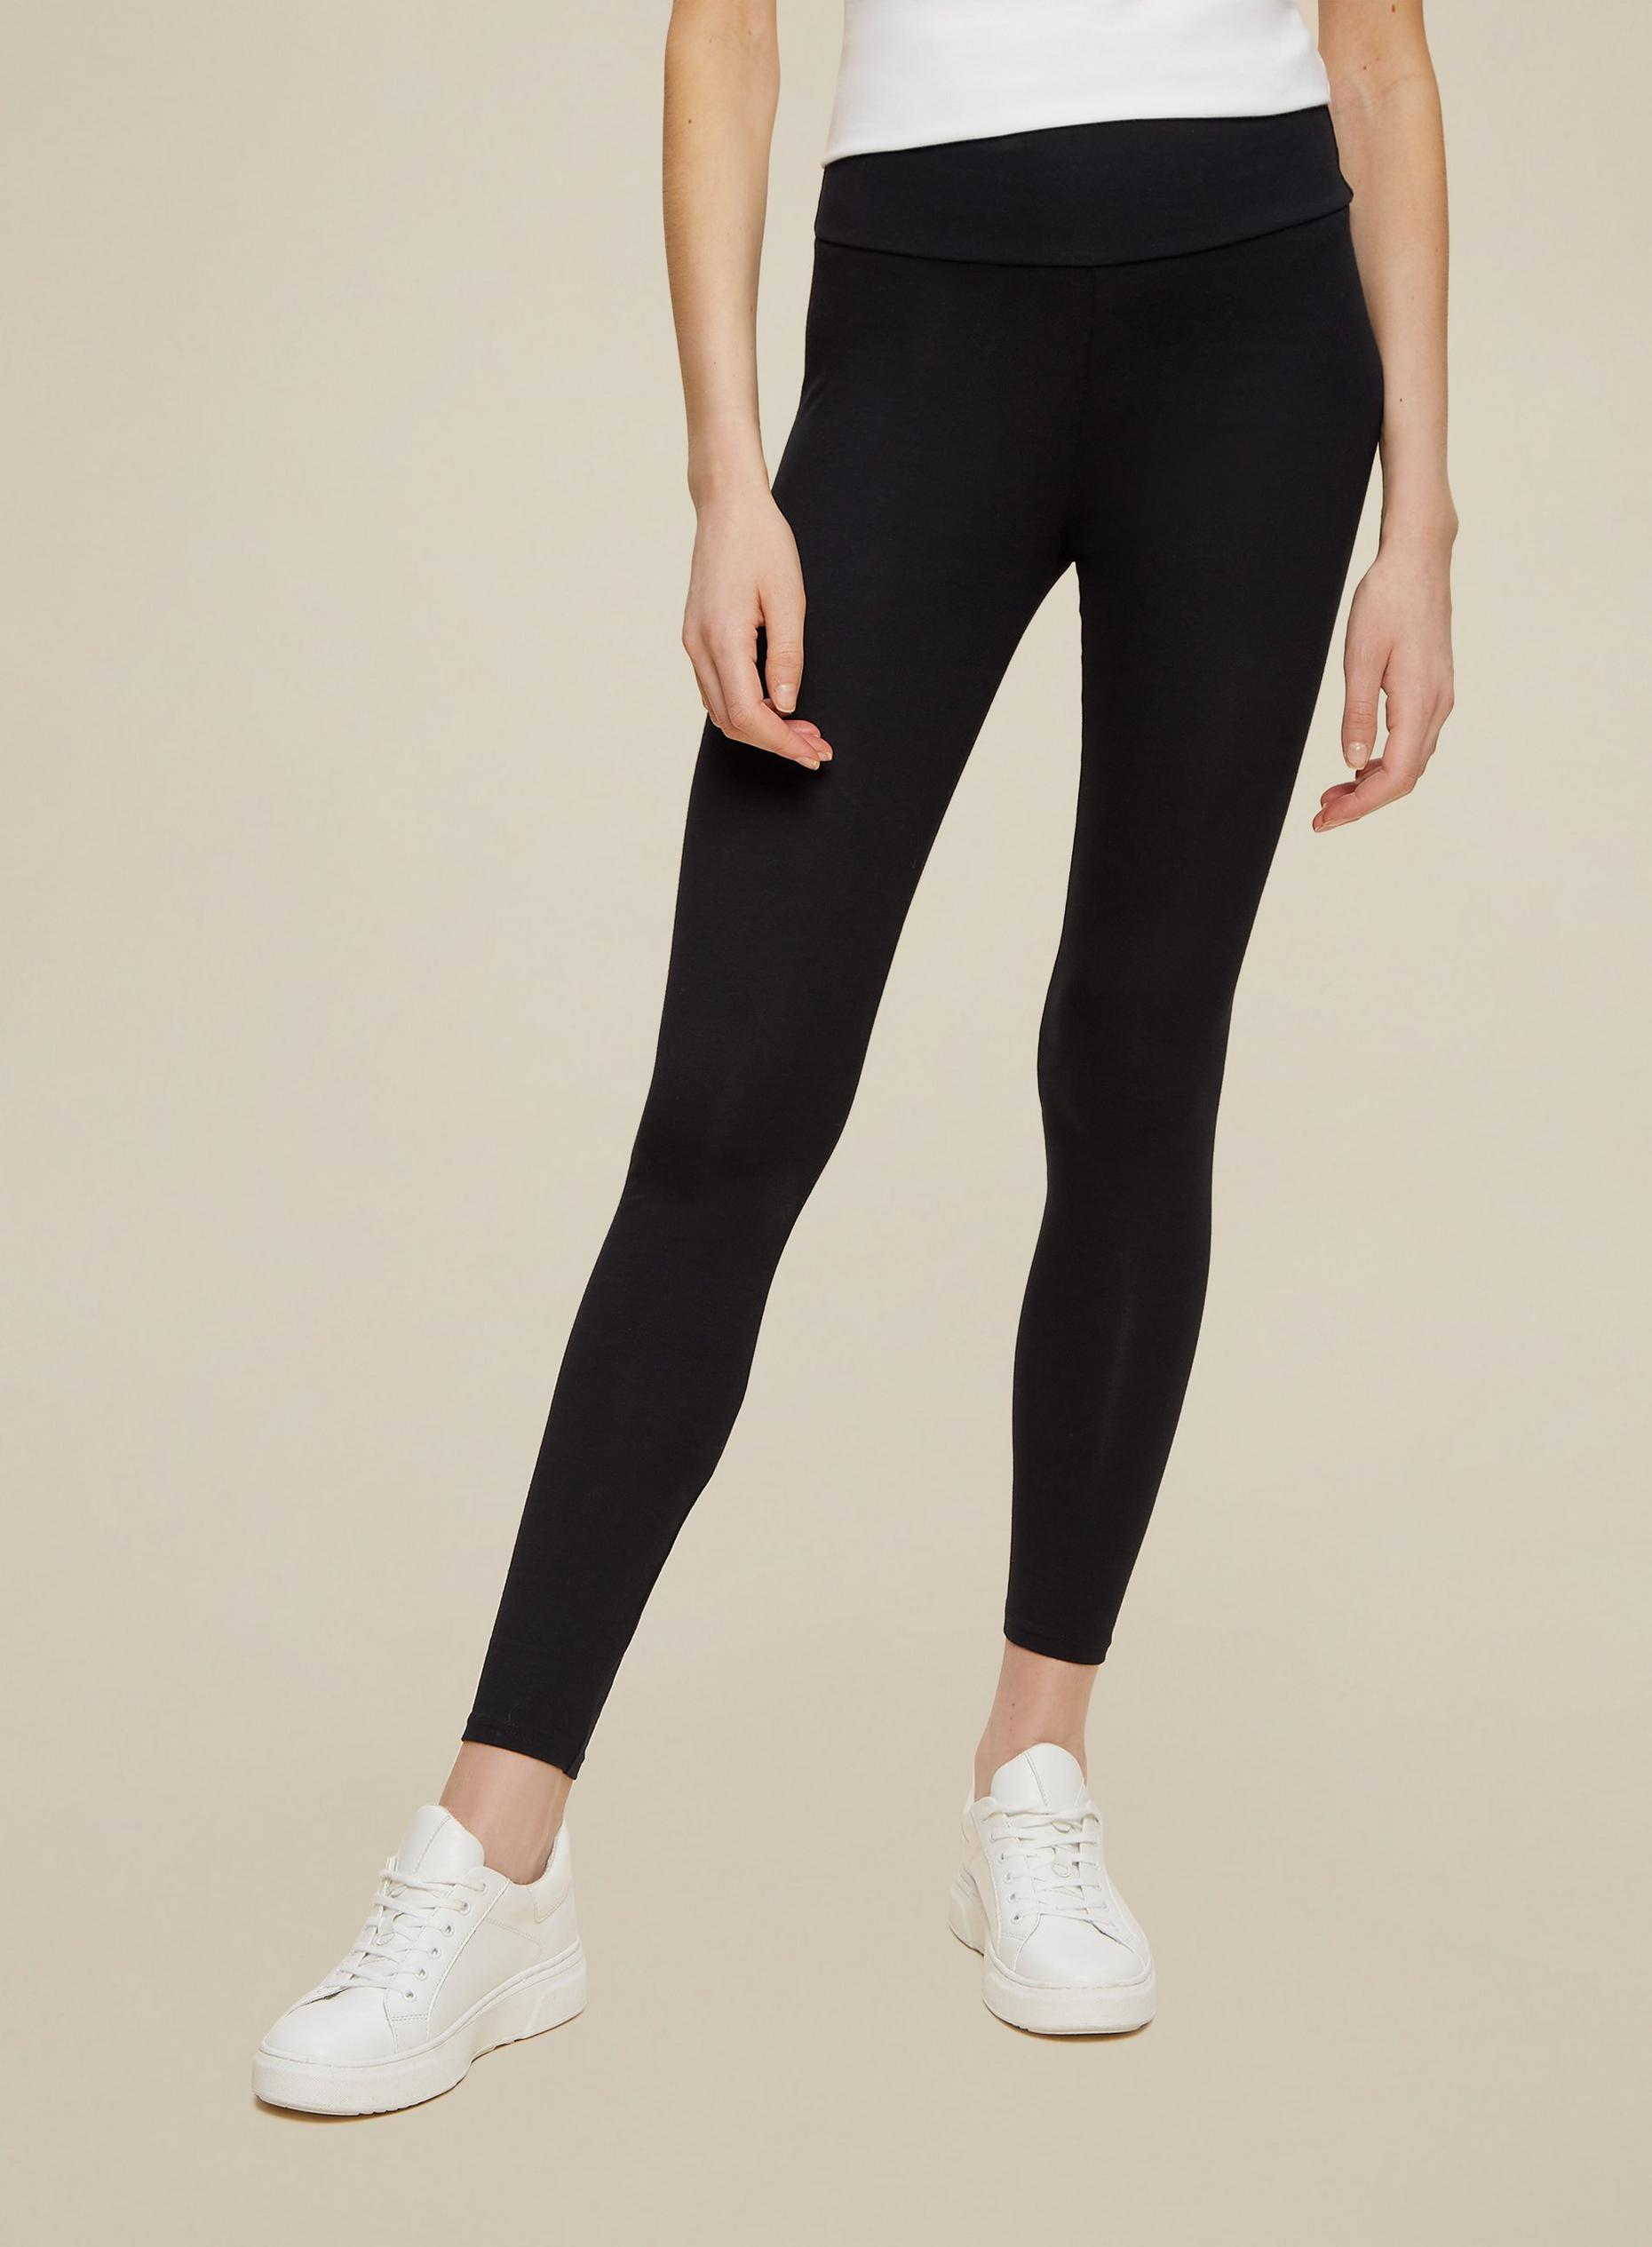 Black Organic Cotton Leggings